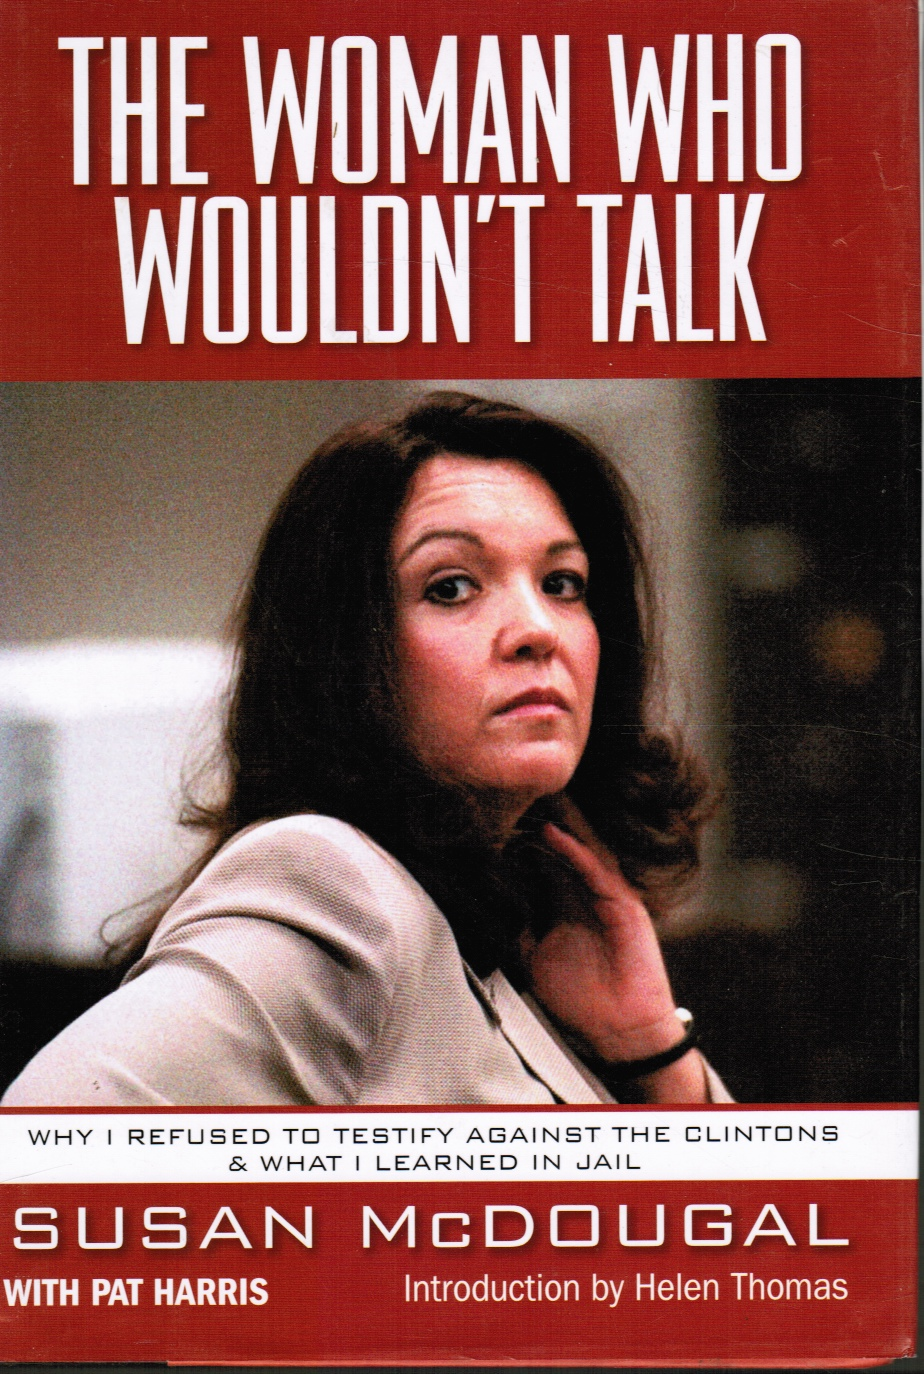 Image for The Woman Who Wouldn't Talk: why I Refused to Testify Against the Clintons and What I Learned in Jail